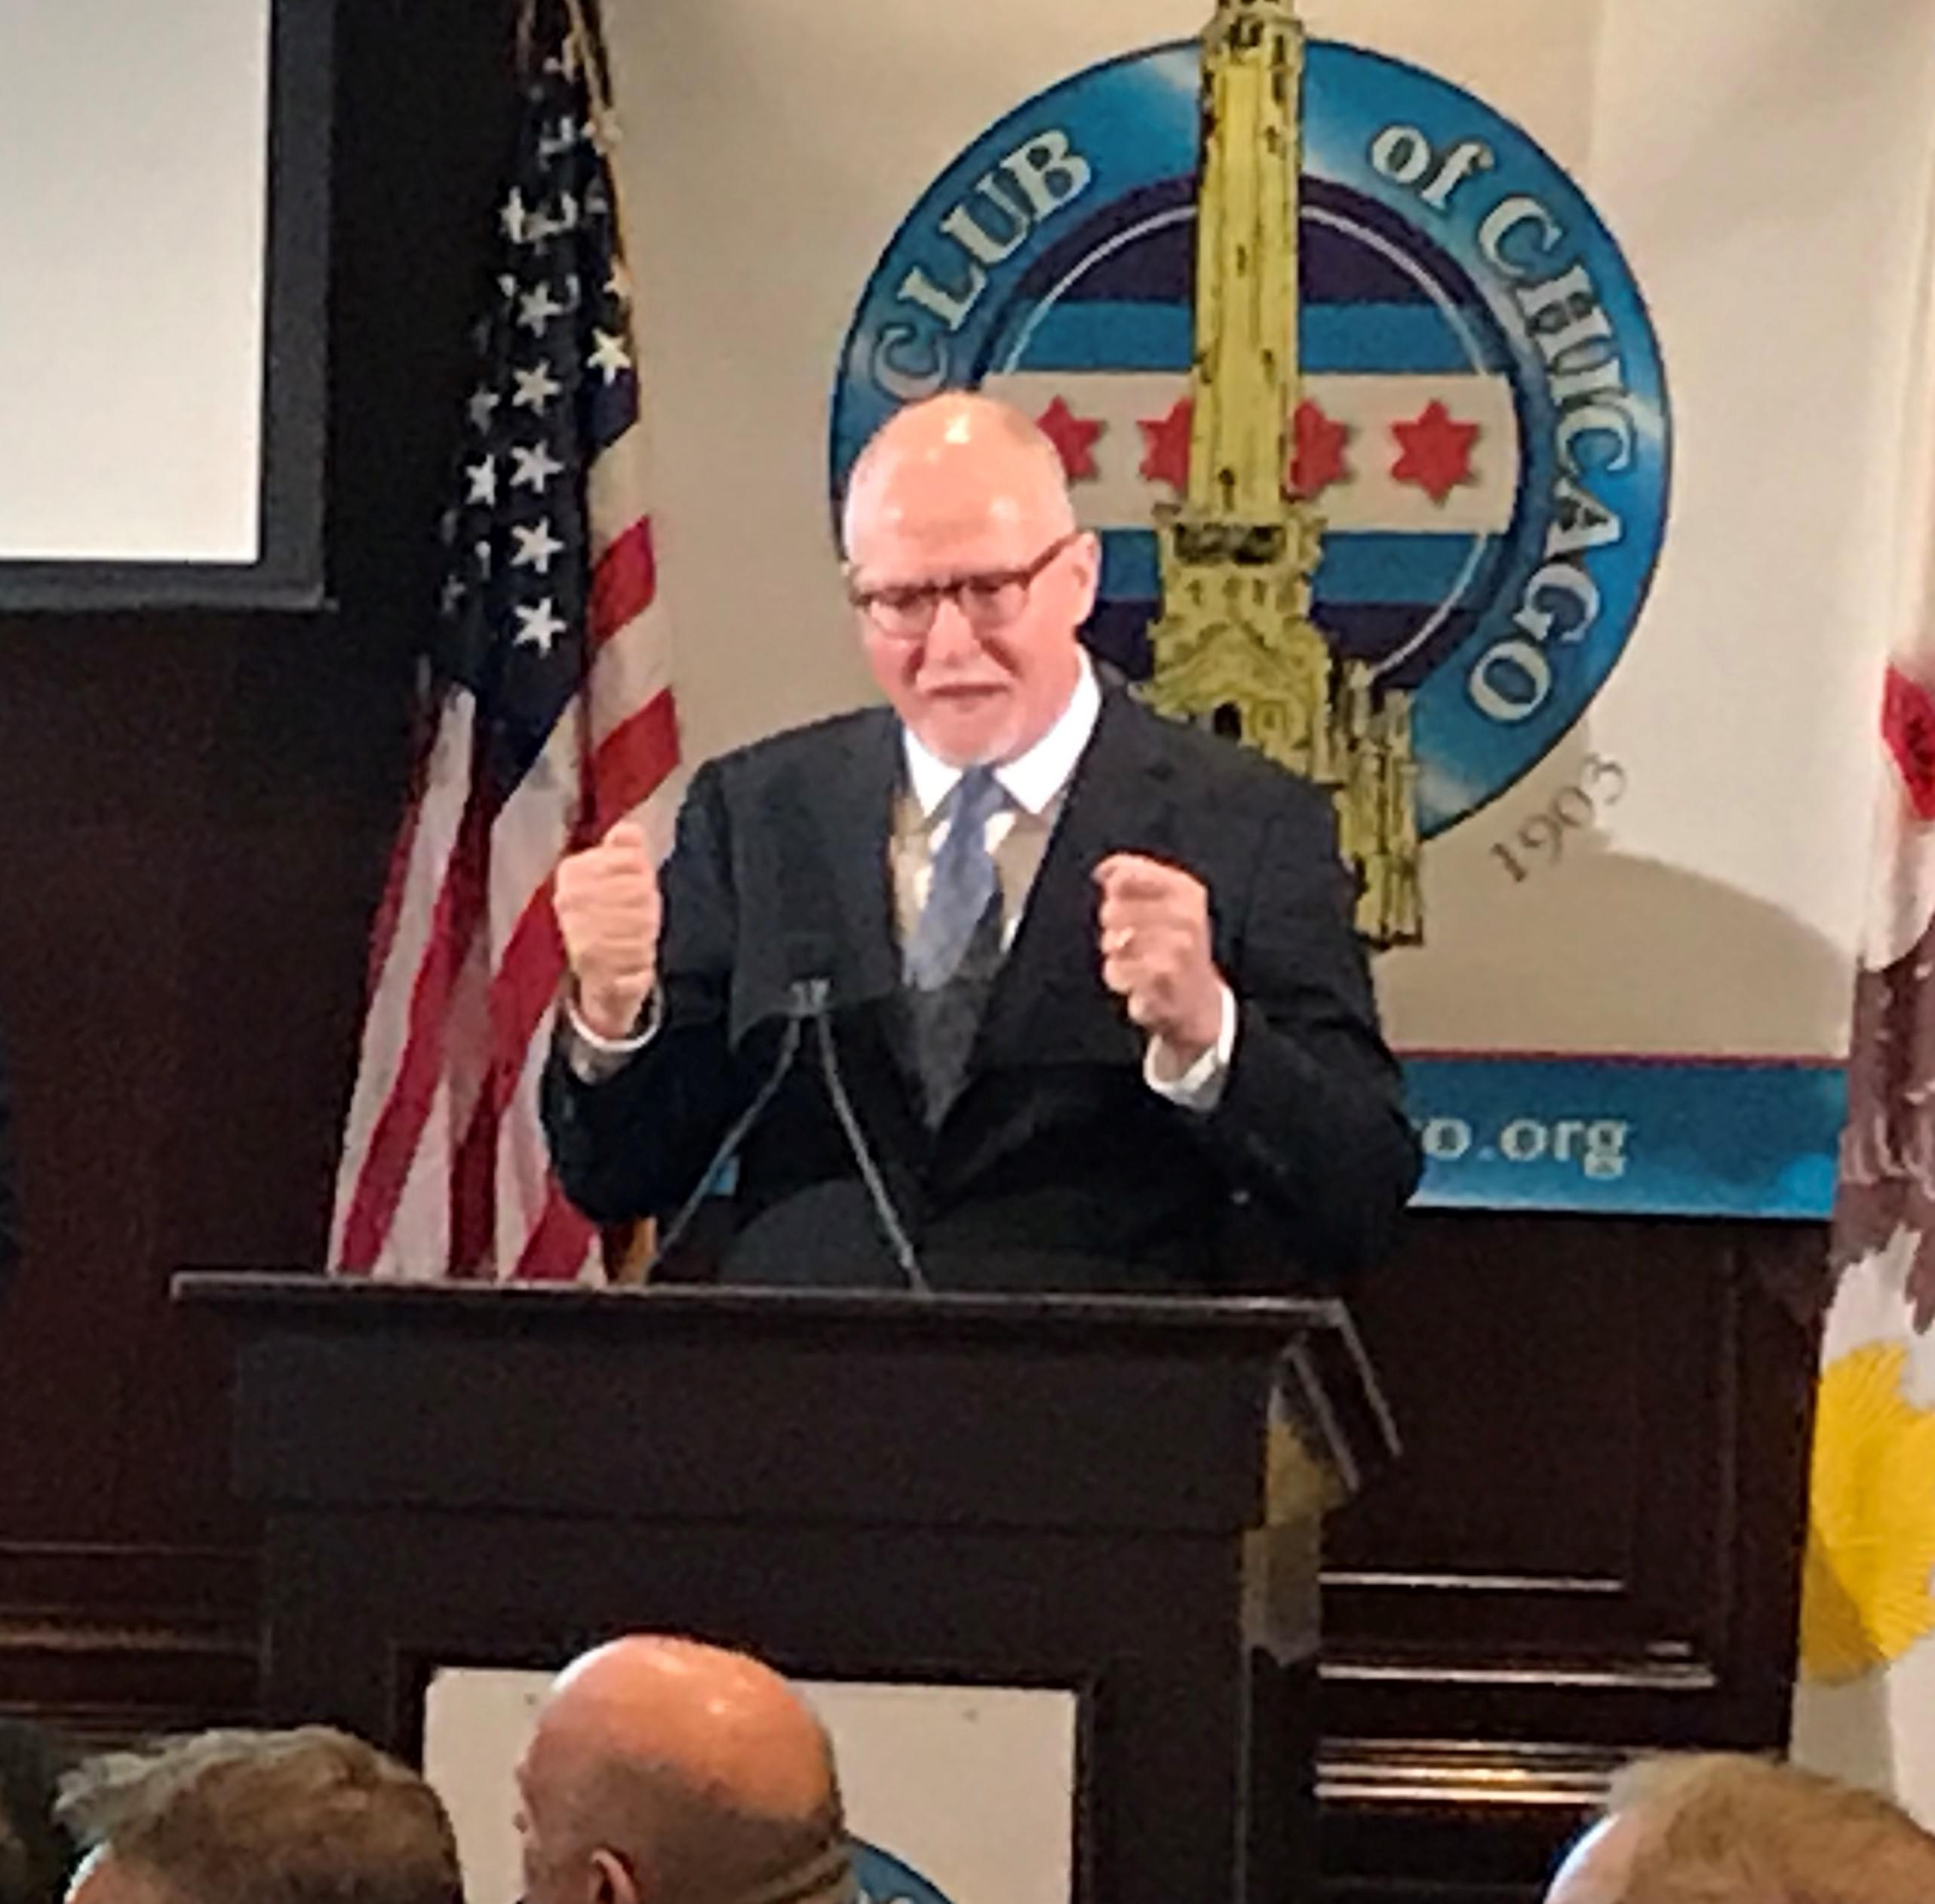 Vallas launches five year plan to stabilize city finances